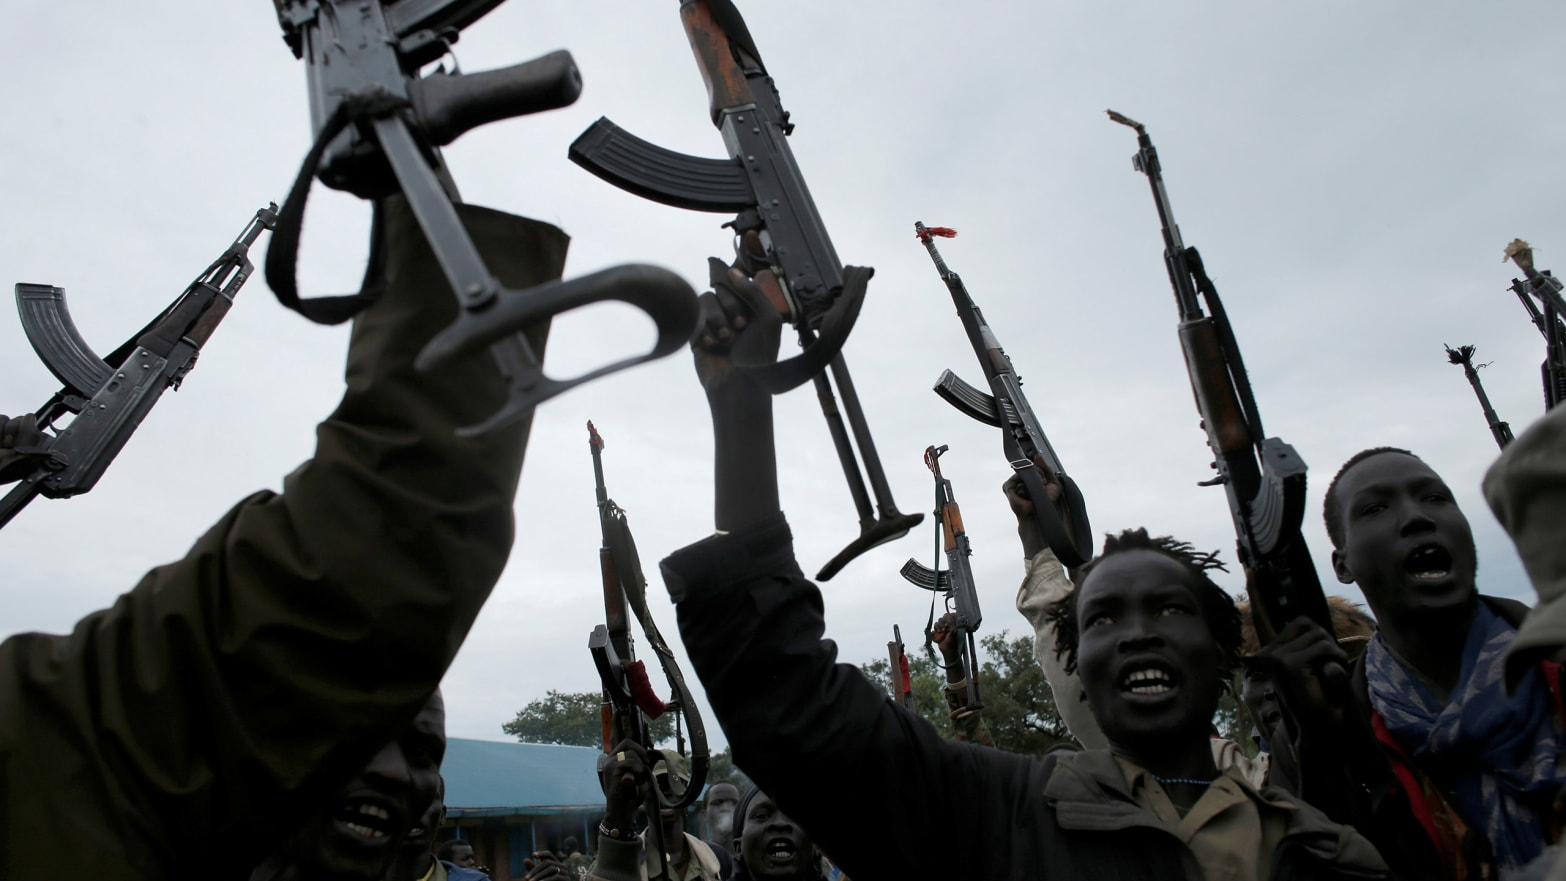 The Spies Helping Push South Sudan to Genocide